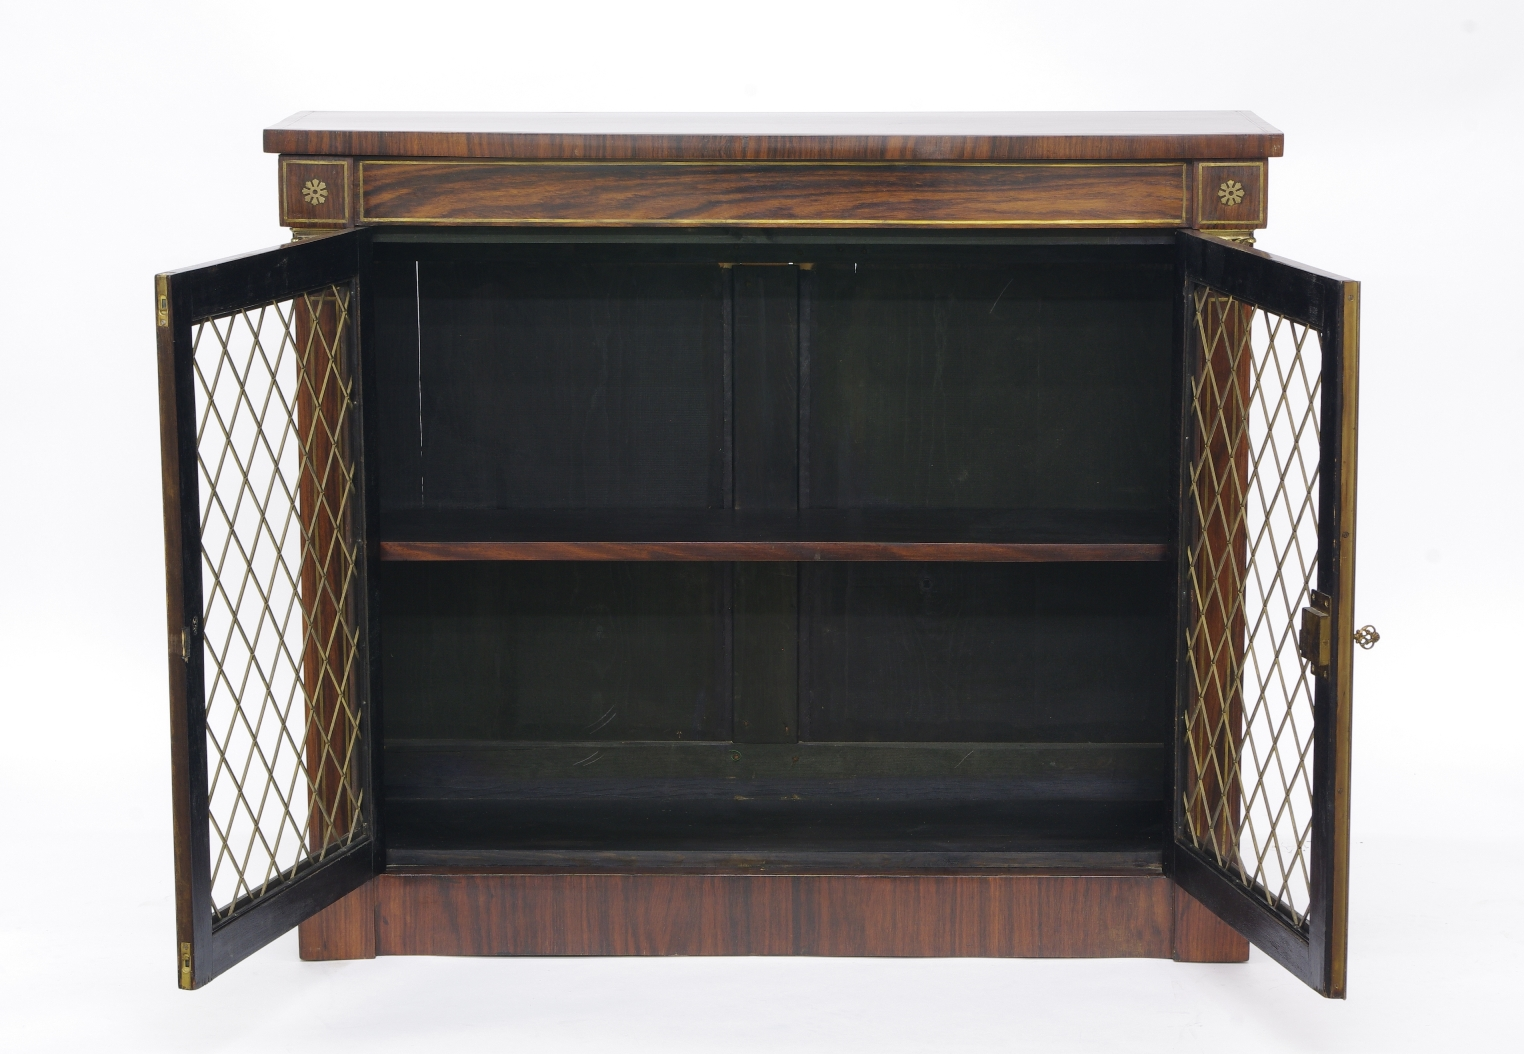 View 5: Regency Rosewood Bookcase Cabinet, c. 1820